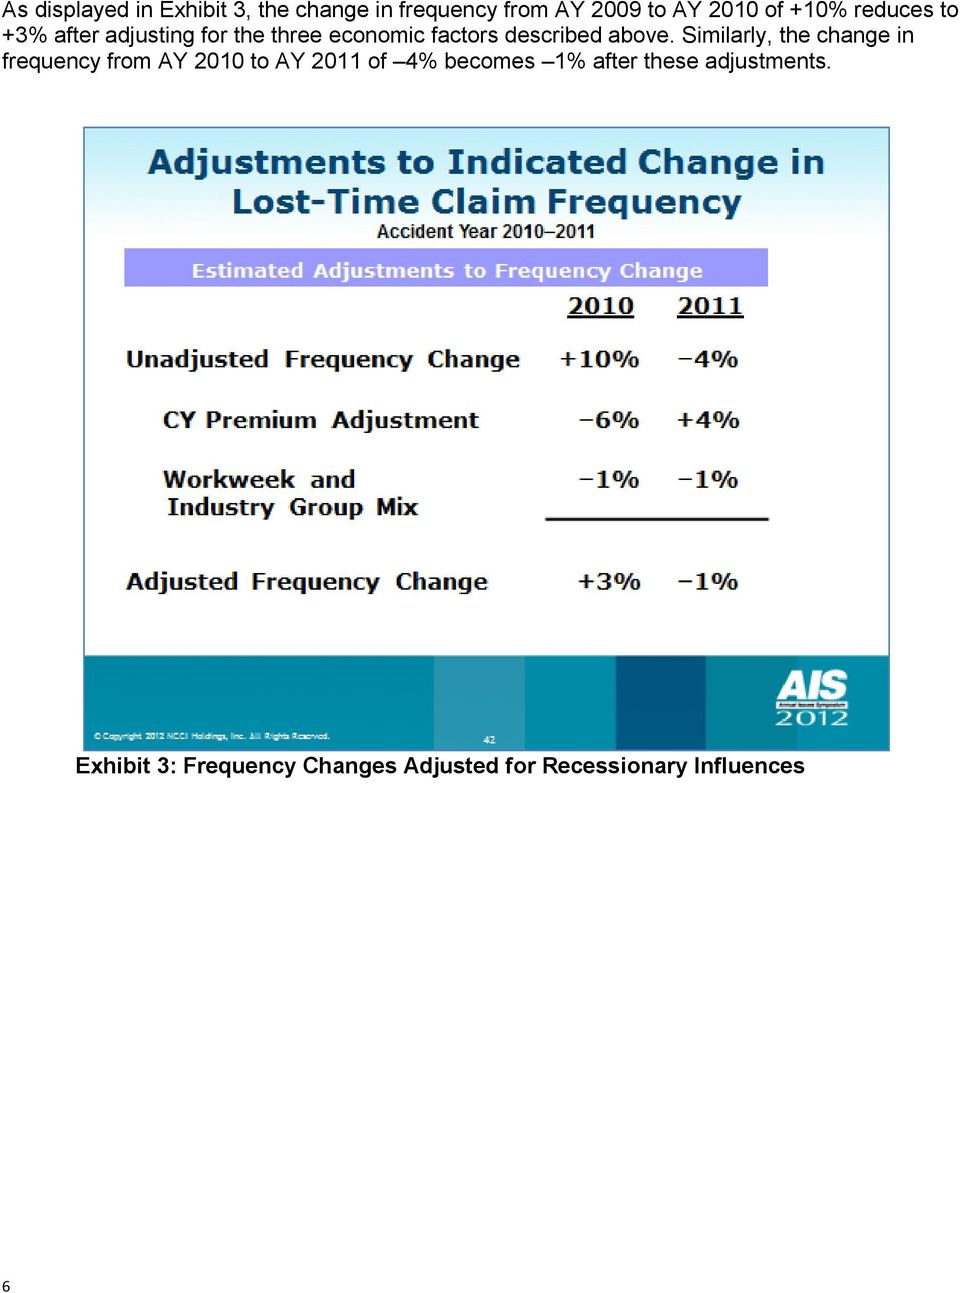 Similarly, the change in frequency from AY 2010 to AY 2011 of 4% becomes 1% after